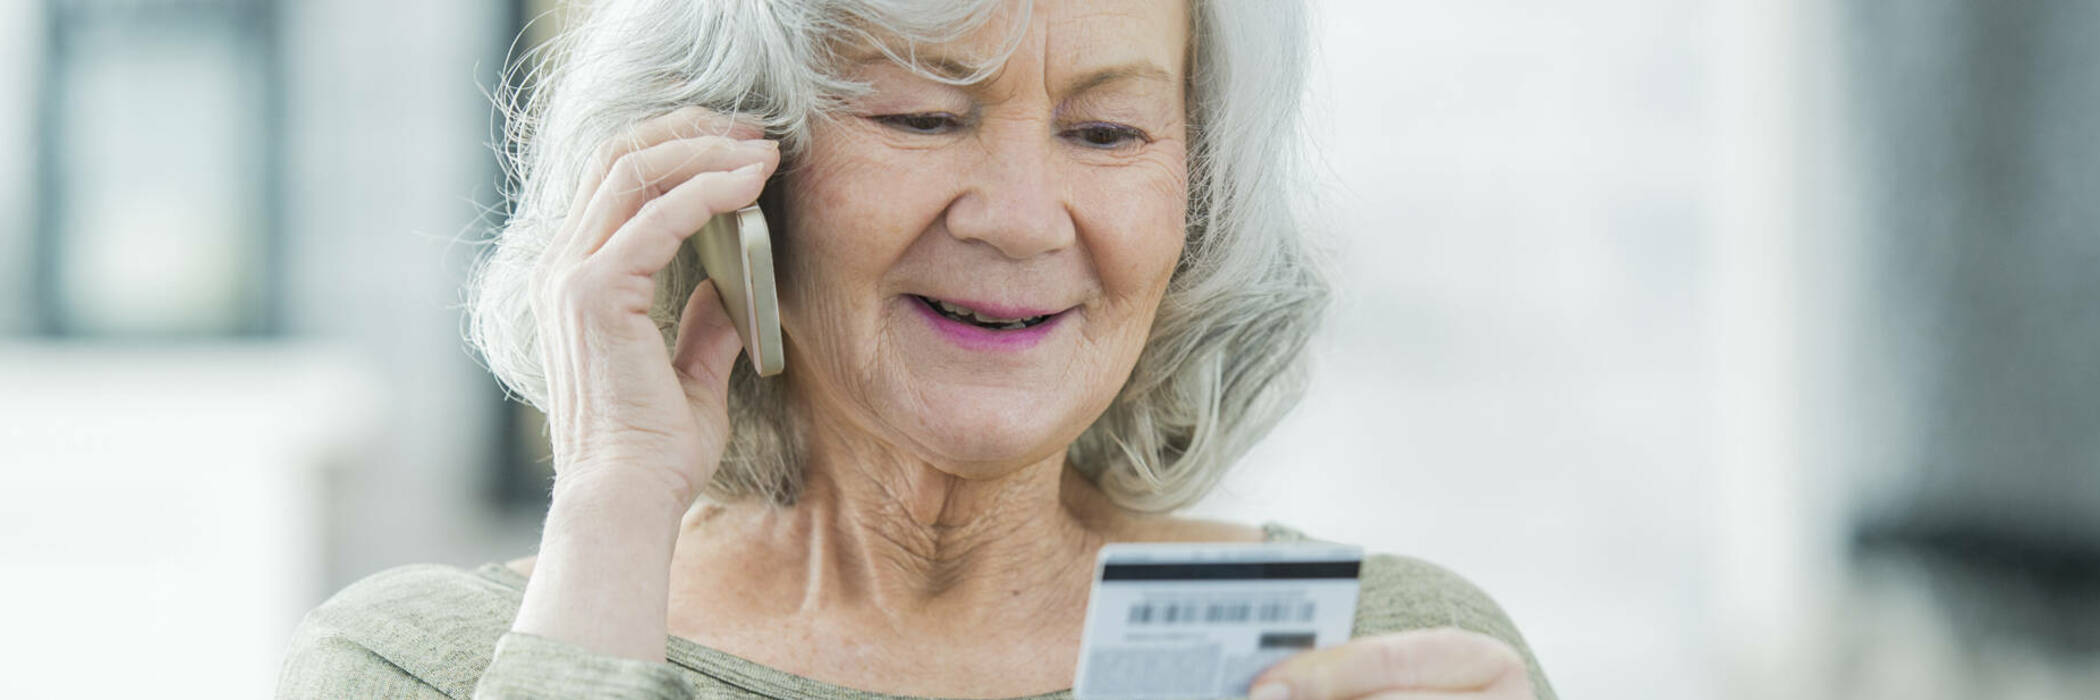 Senior woman making payment over the phone